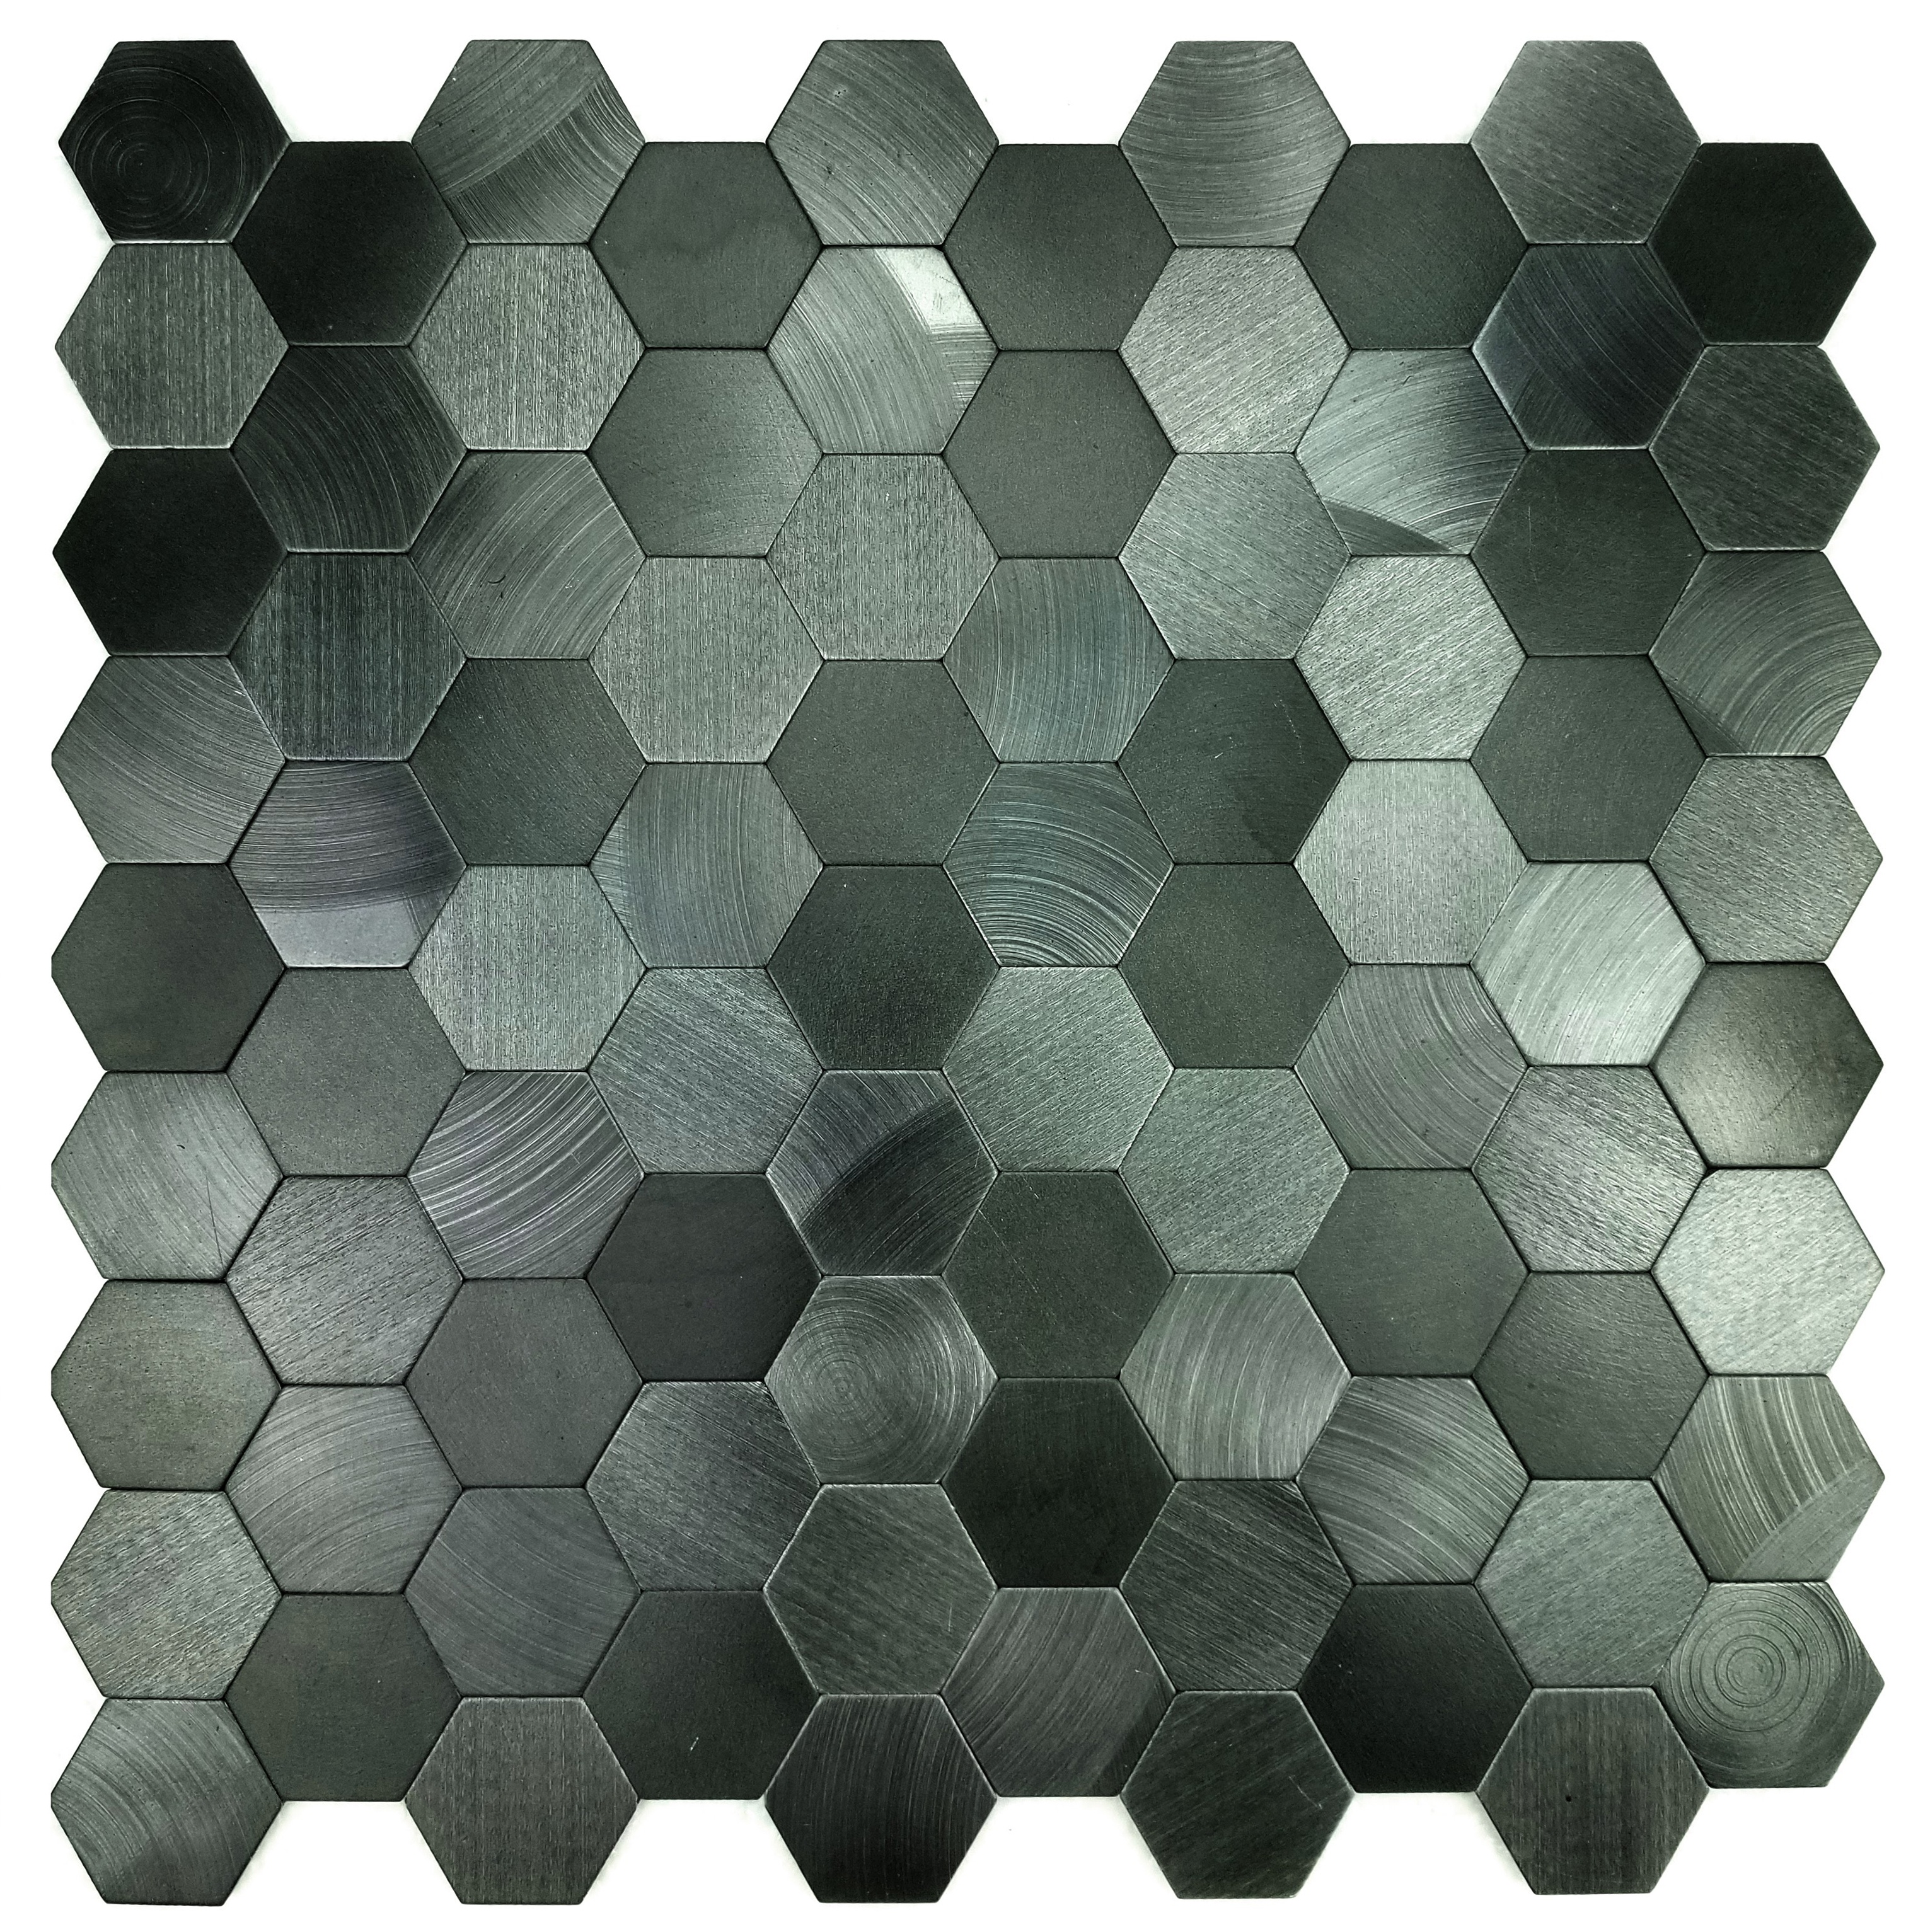 Enchanted Metals 1.3125 in x 1.3125 in Aluminum Hexagon Mosaic in SPACE BLUE Brushed